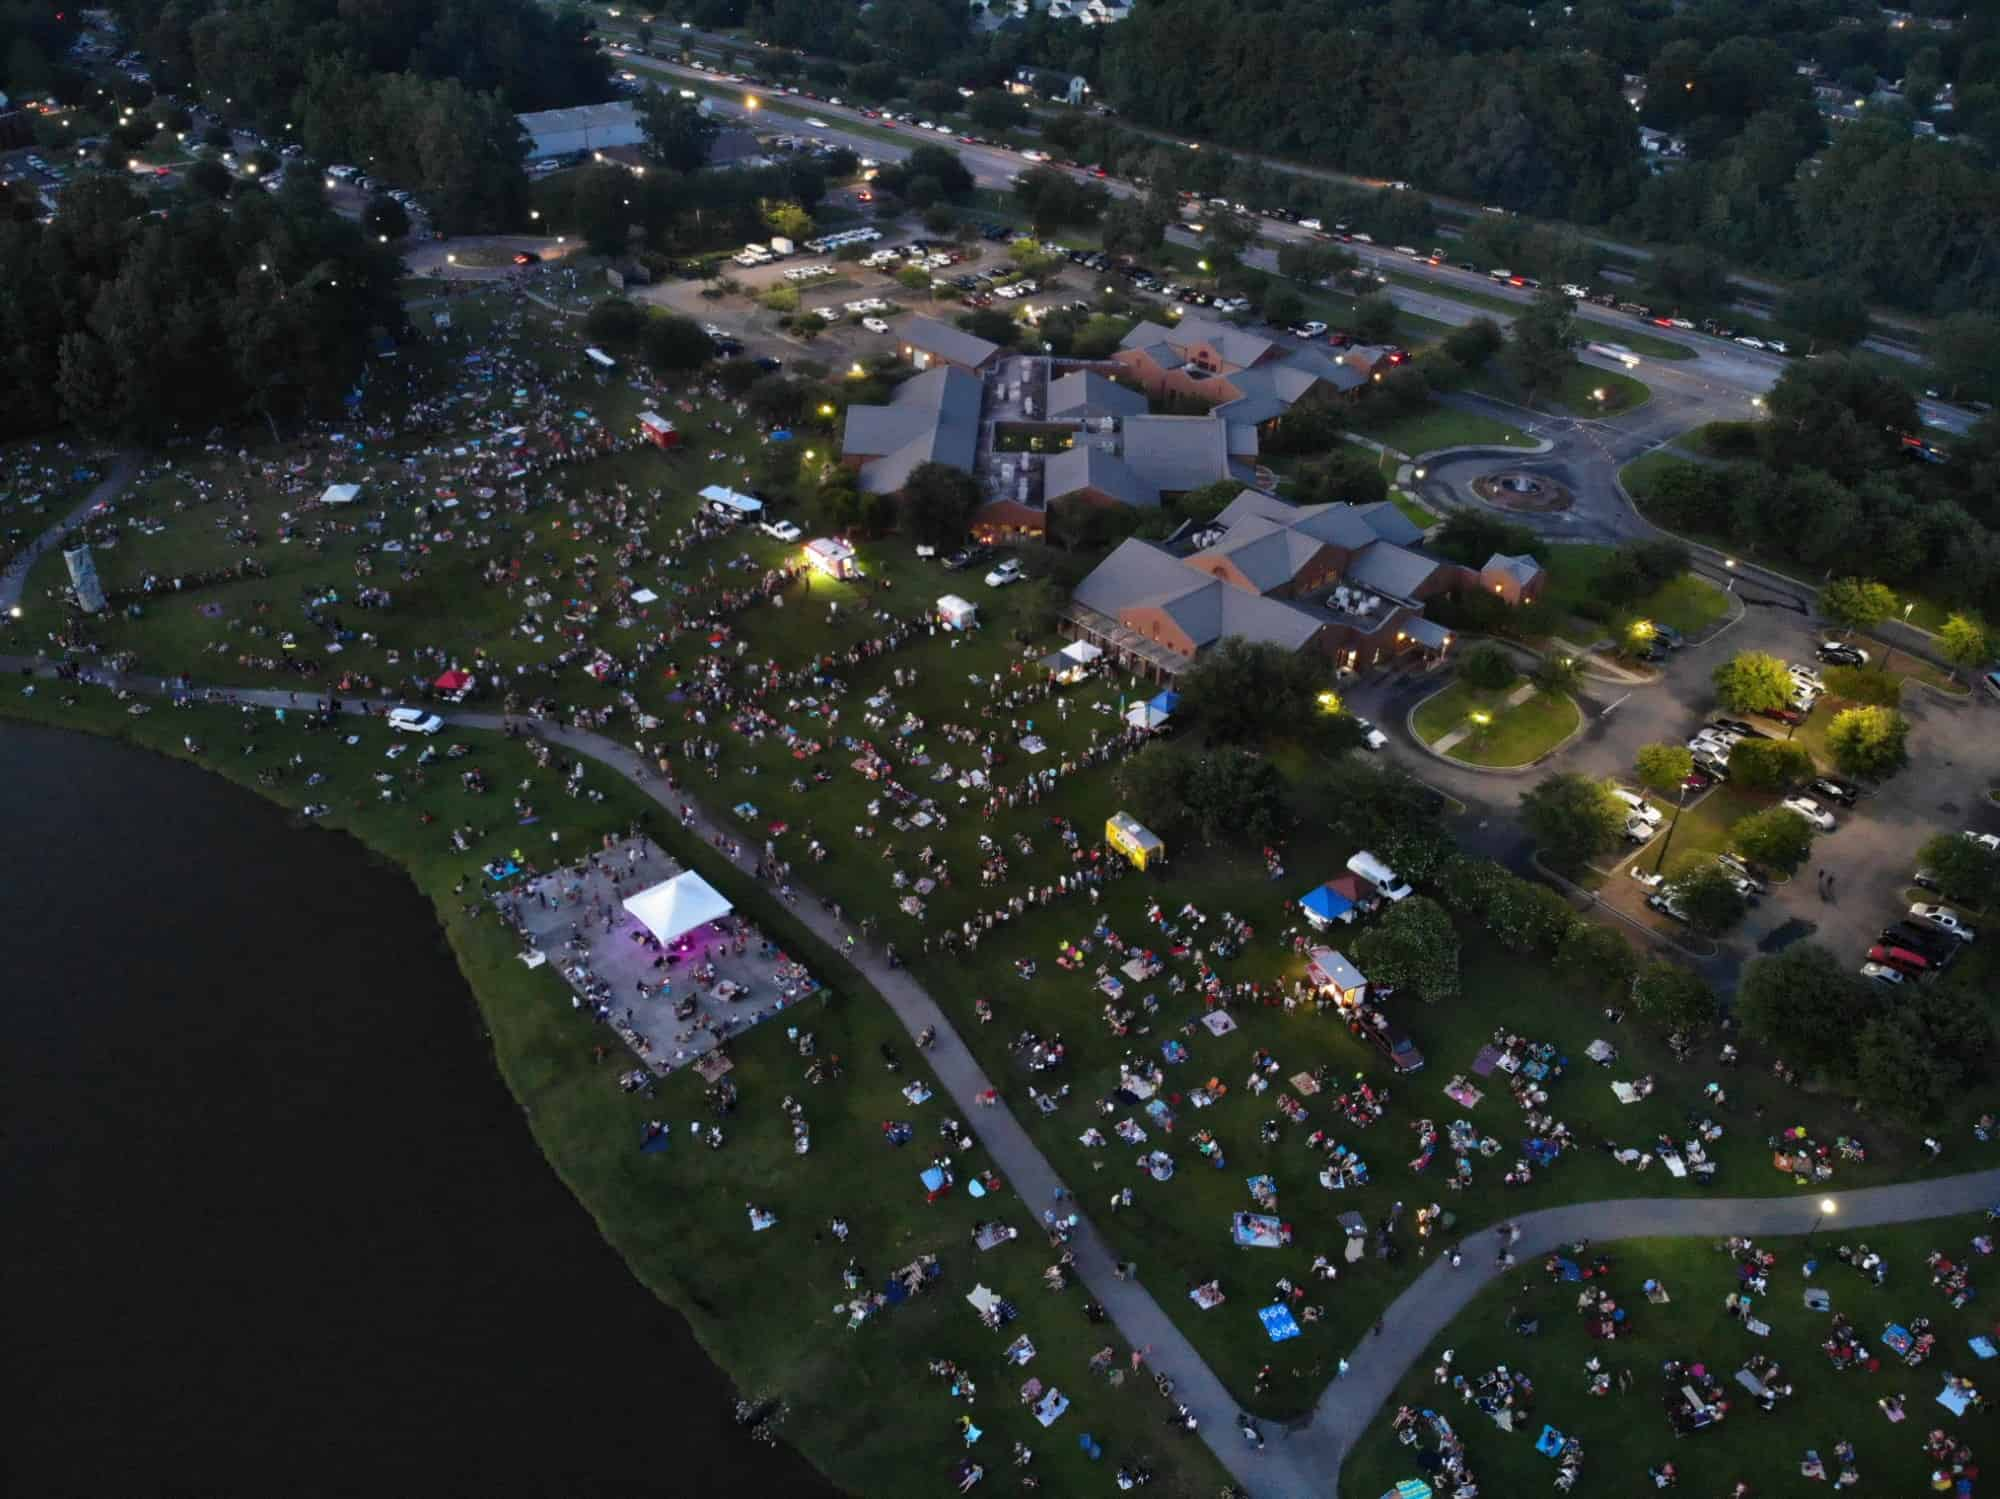 Drone of 2018 July 4 Celebration at City Hall